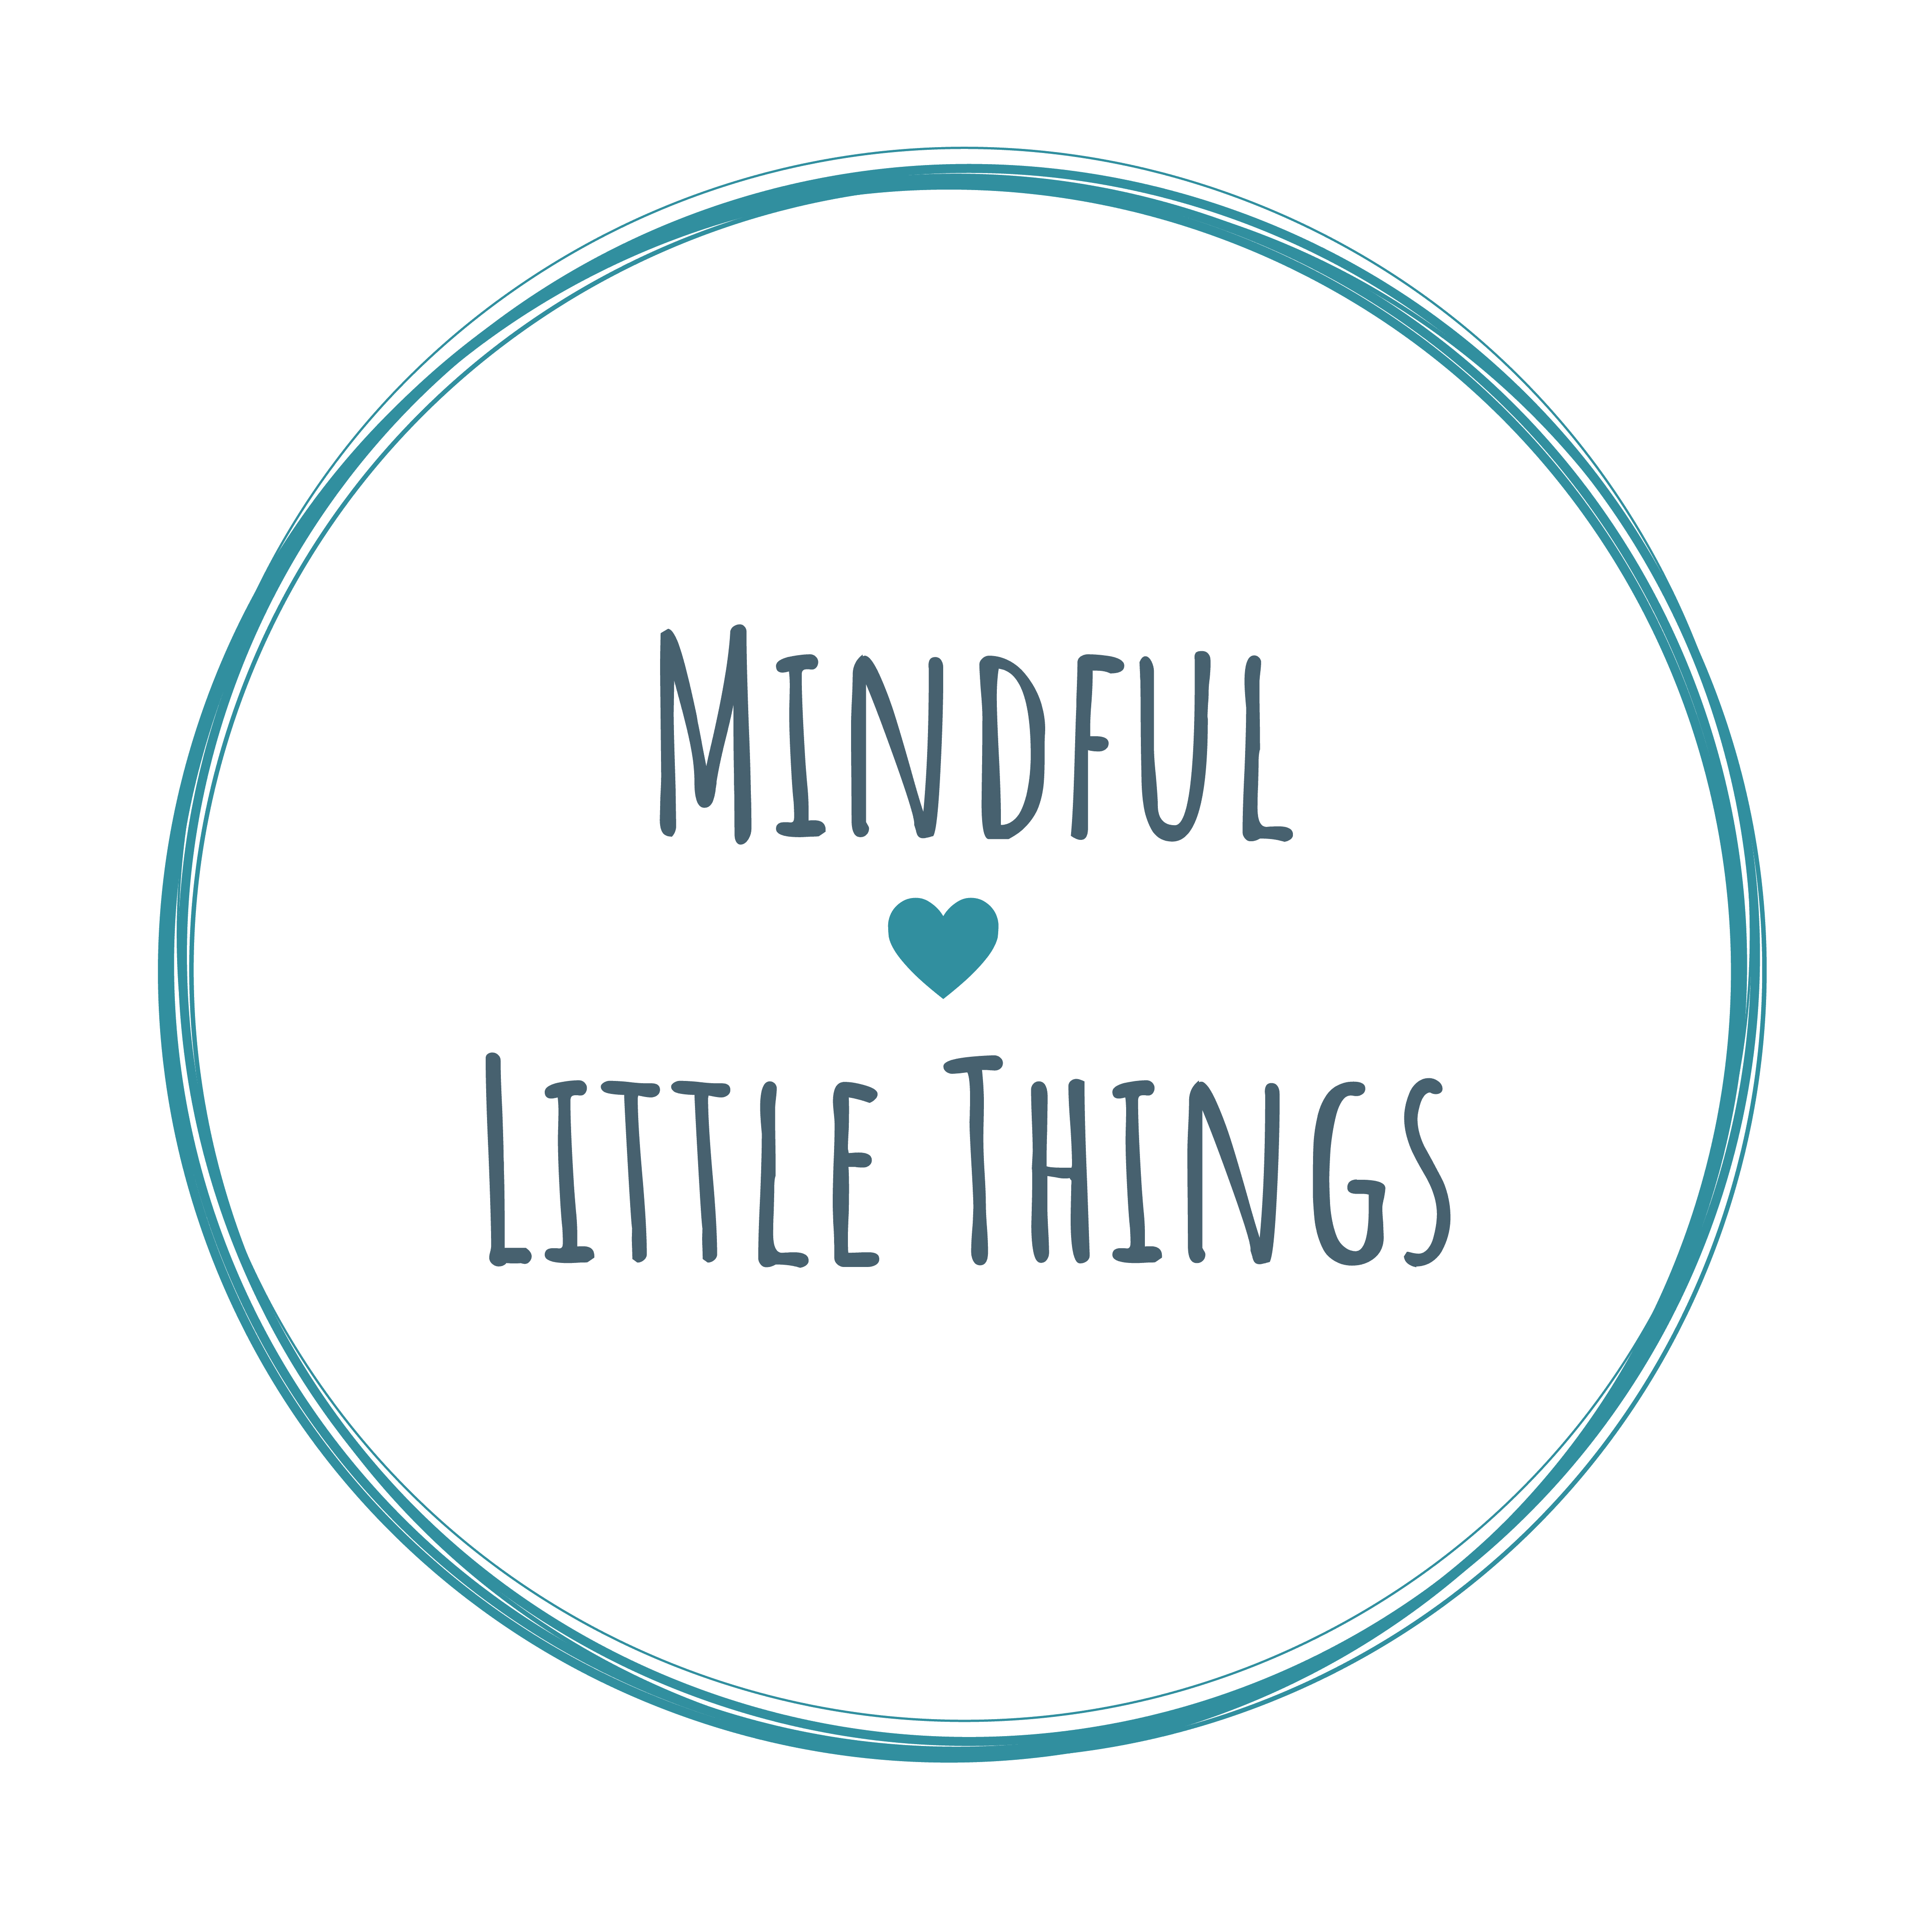 Mindful Little Things